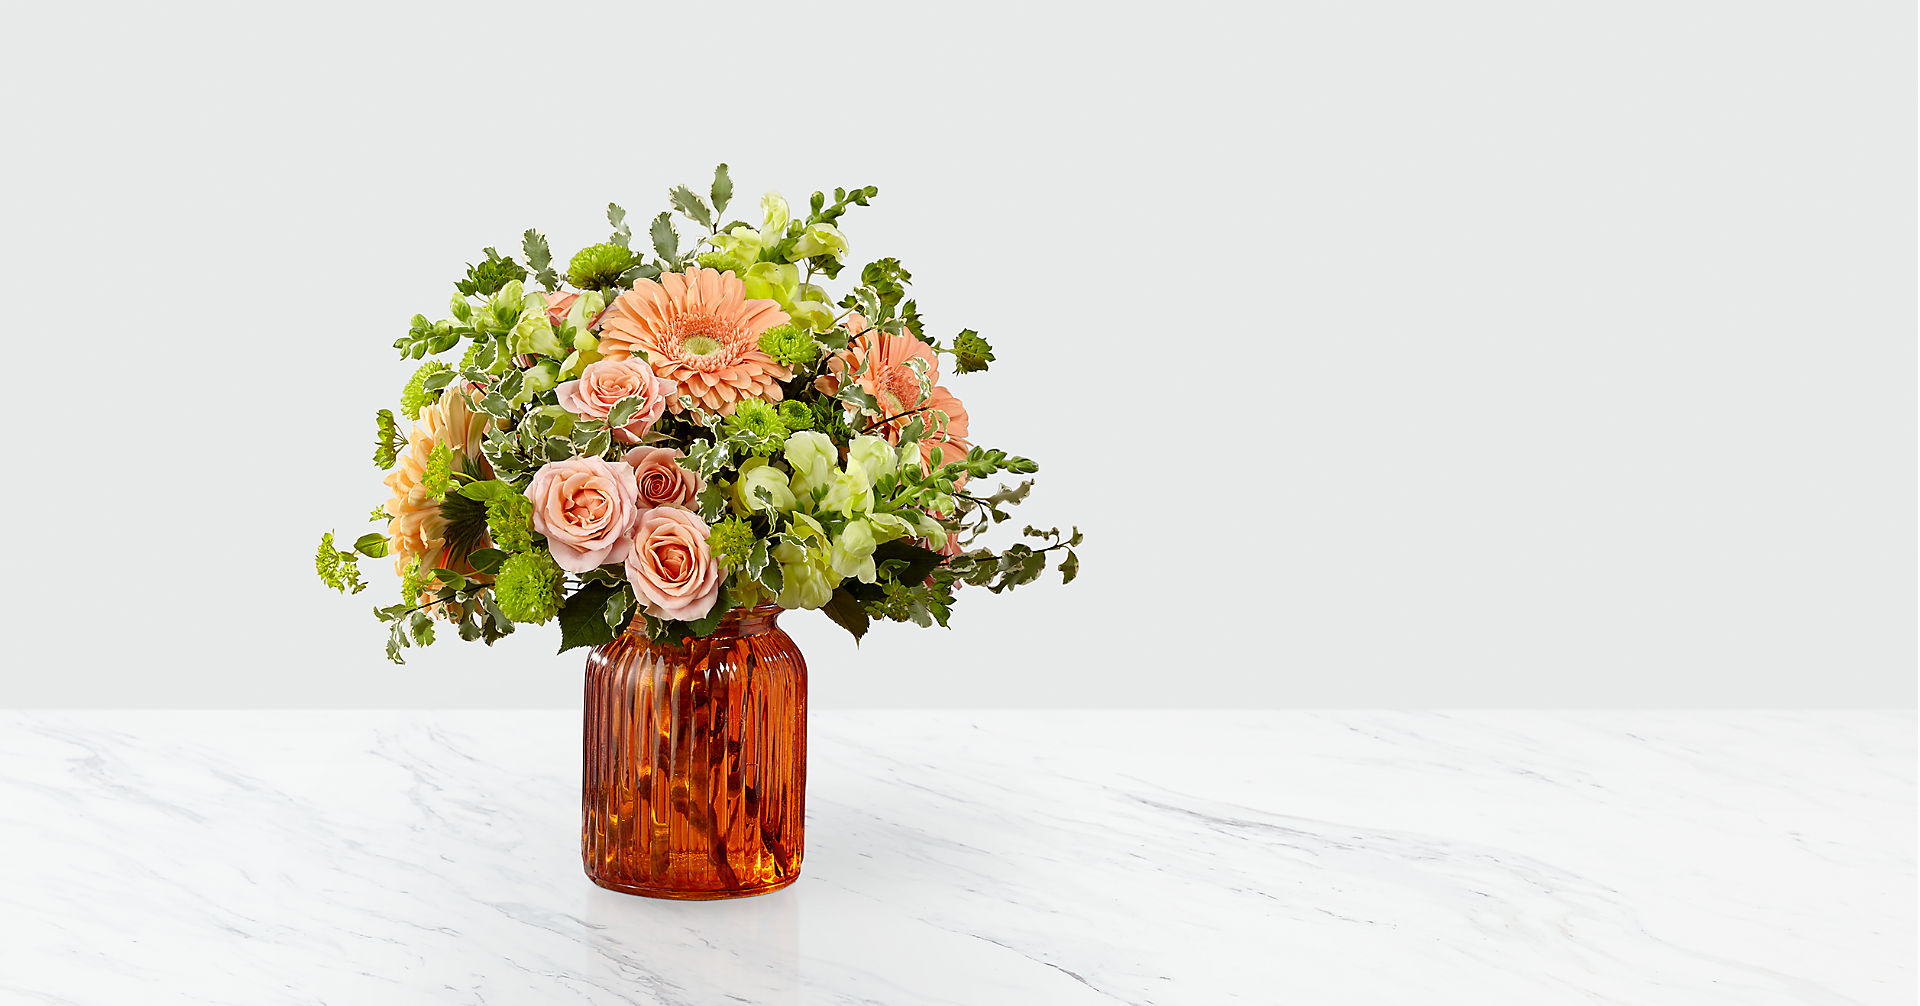 Peachy Keen™ Bouquet by FTD® - Image 1 Of 3